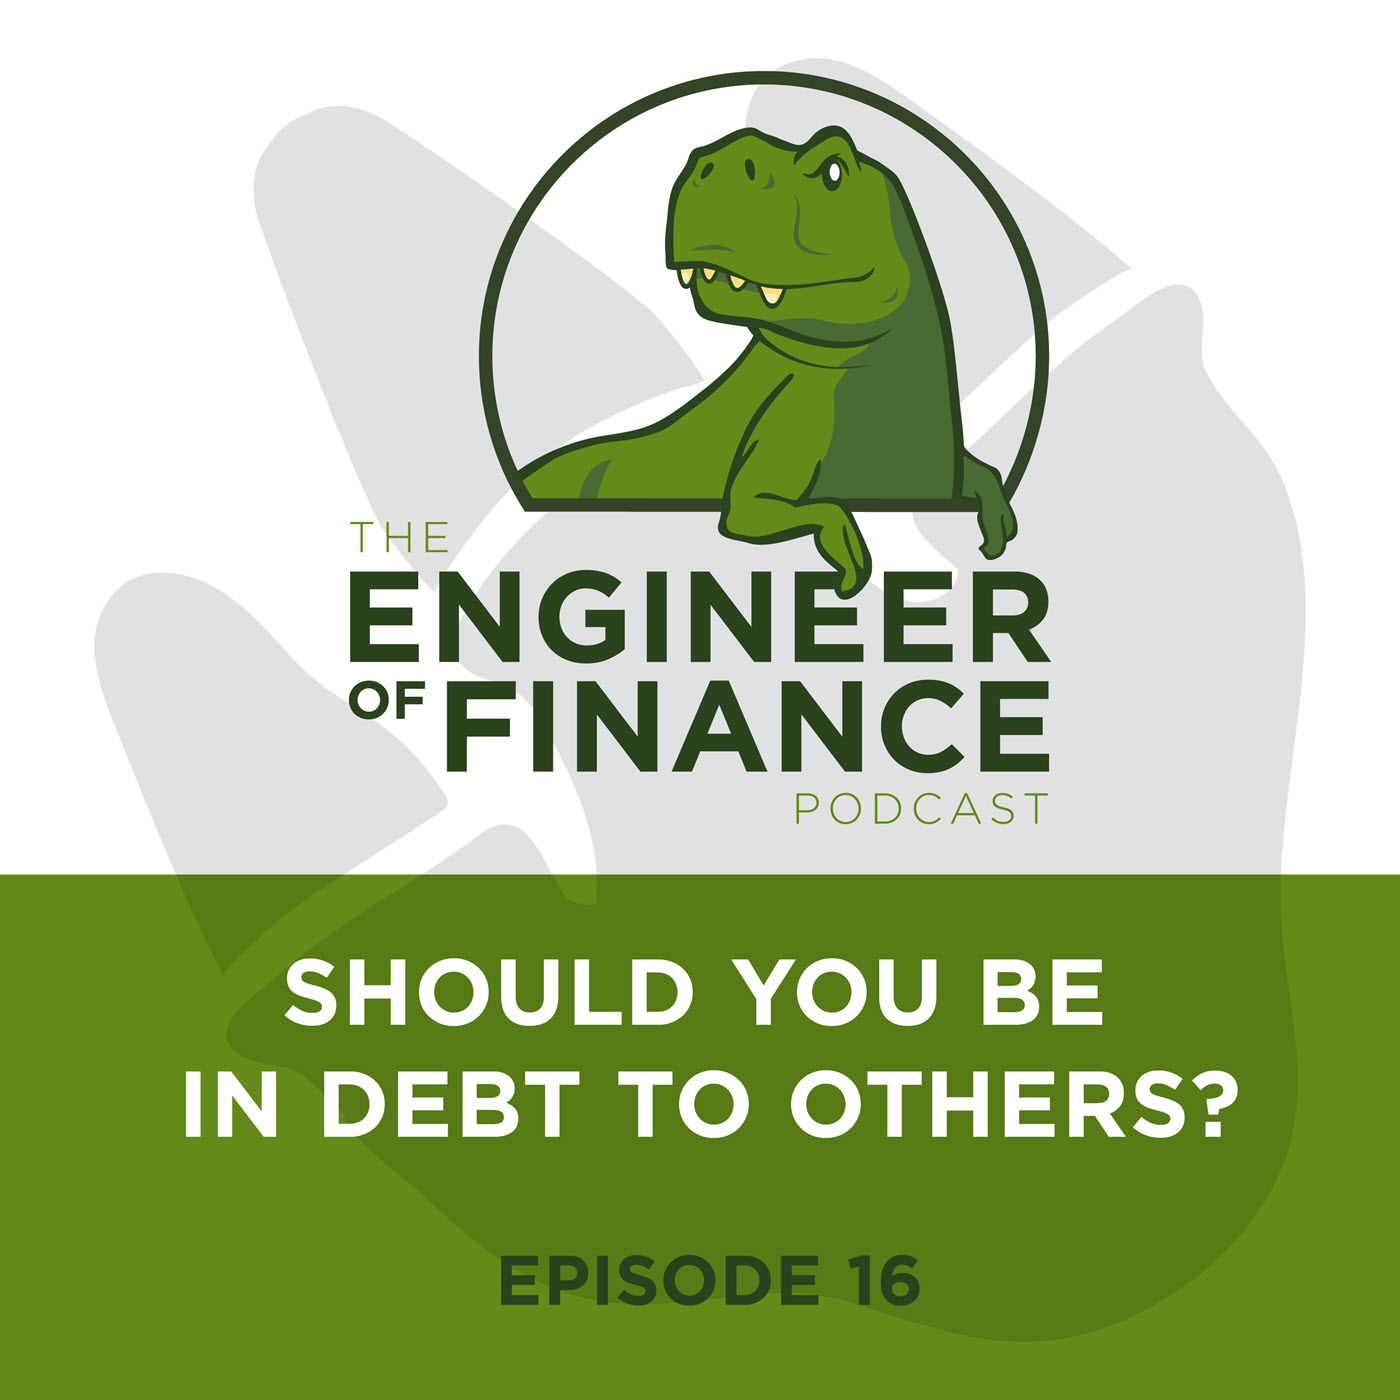 Should You Be In Debt To Others? – Episode 16